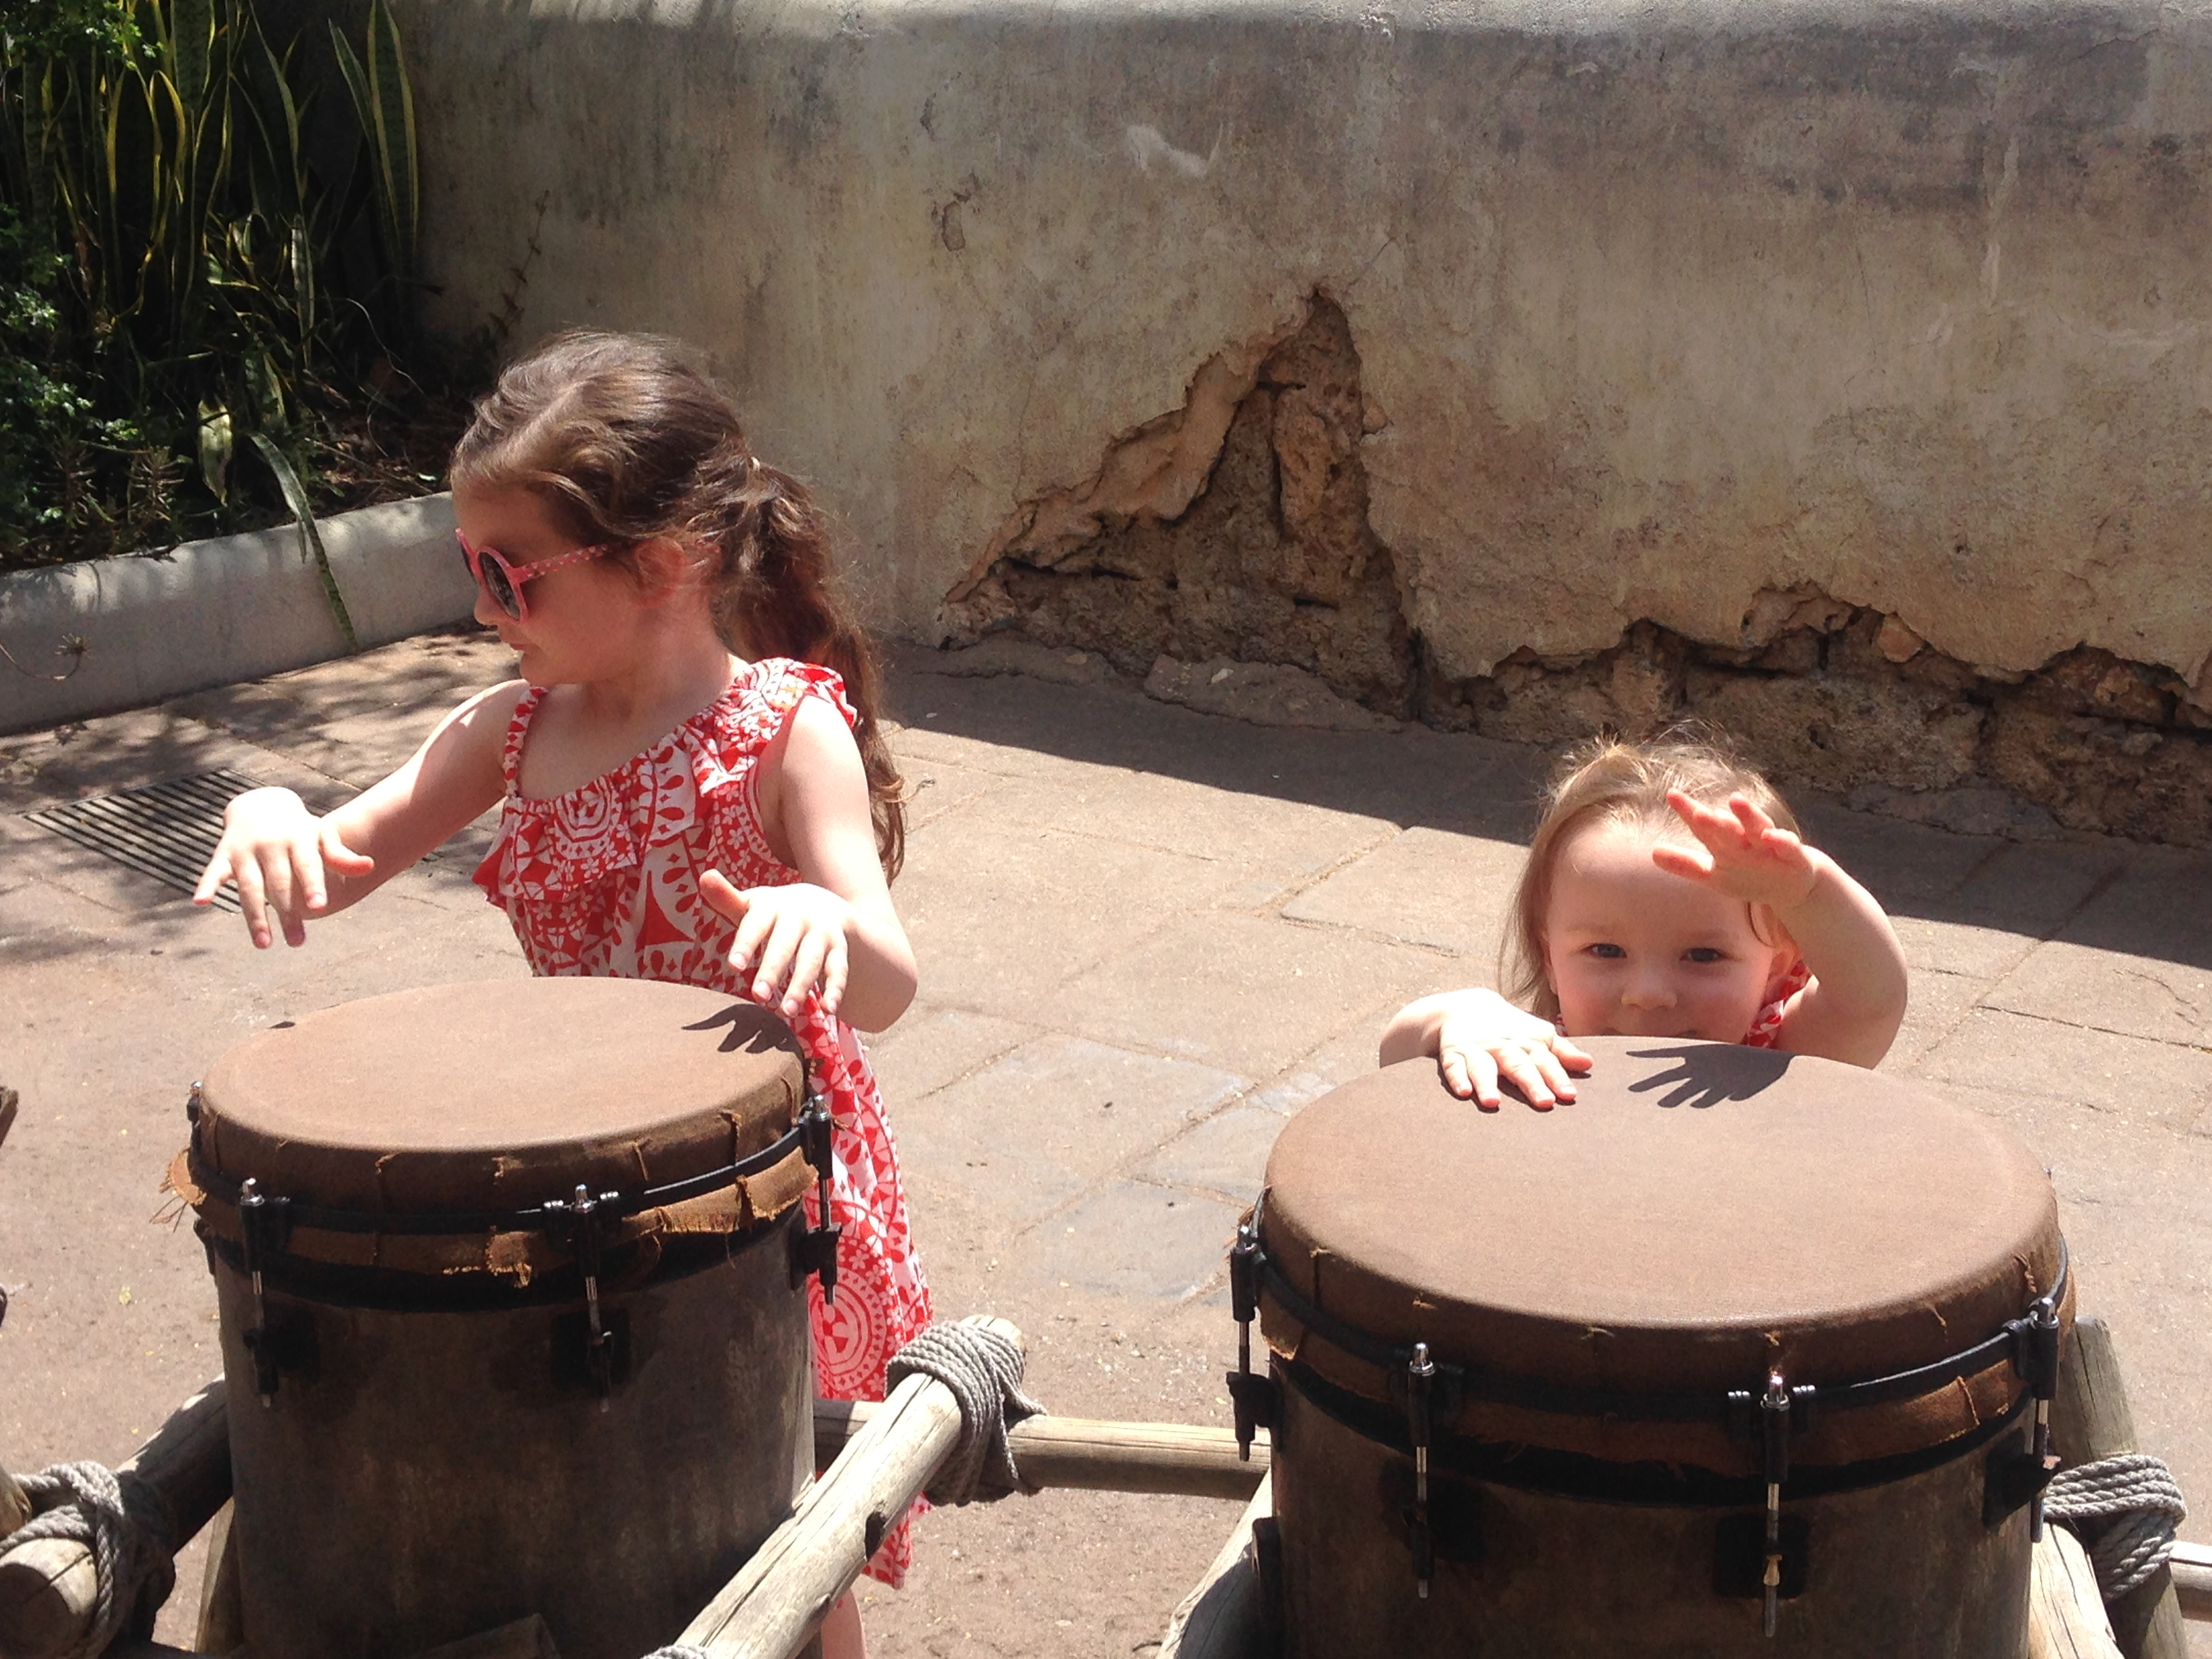 A quick break to play some fun musical instruments